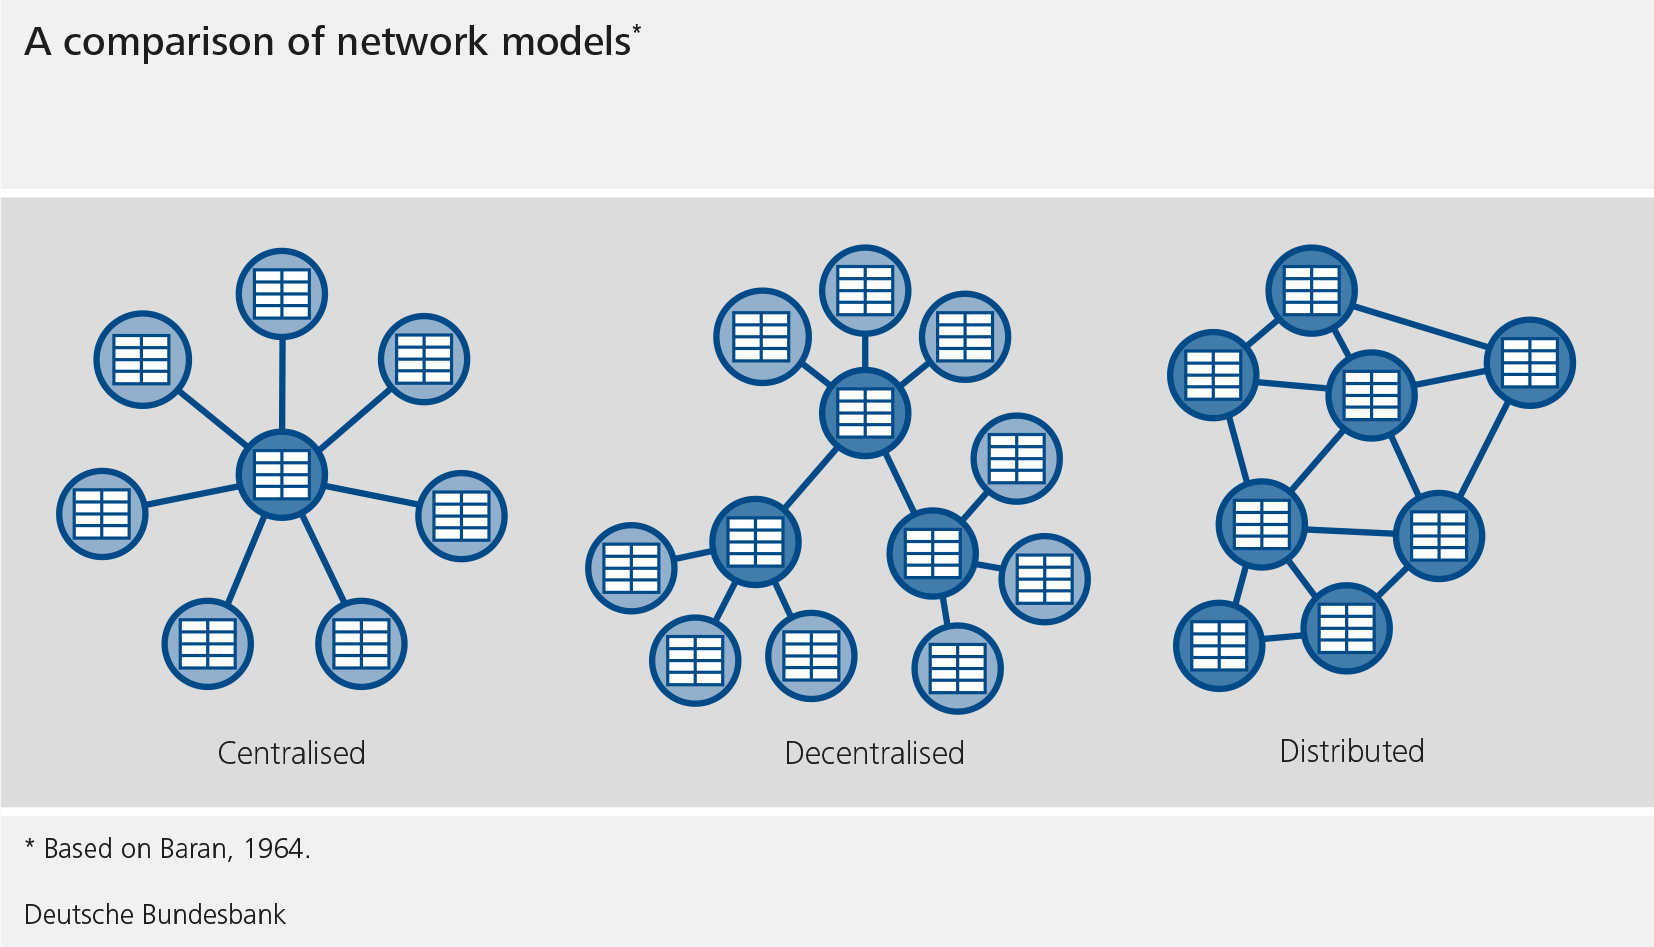 The graphic shows a comparison of network models based on Baran, 1964